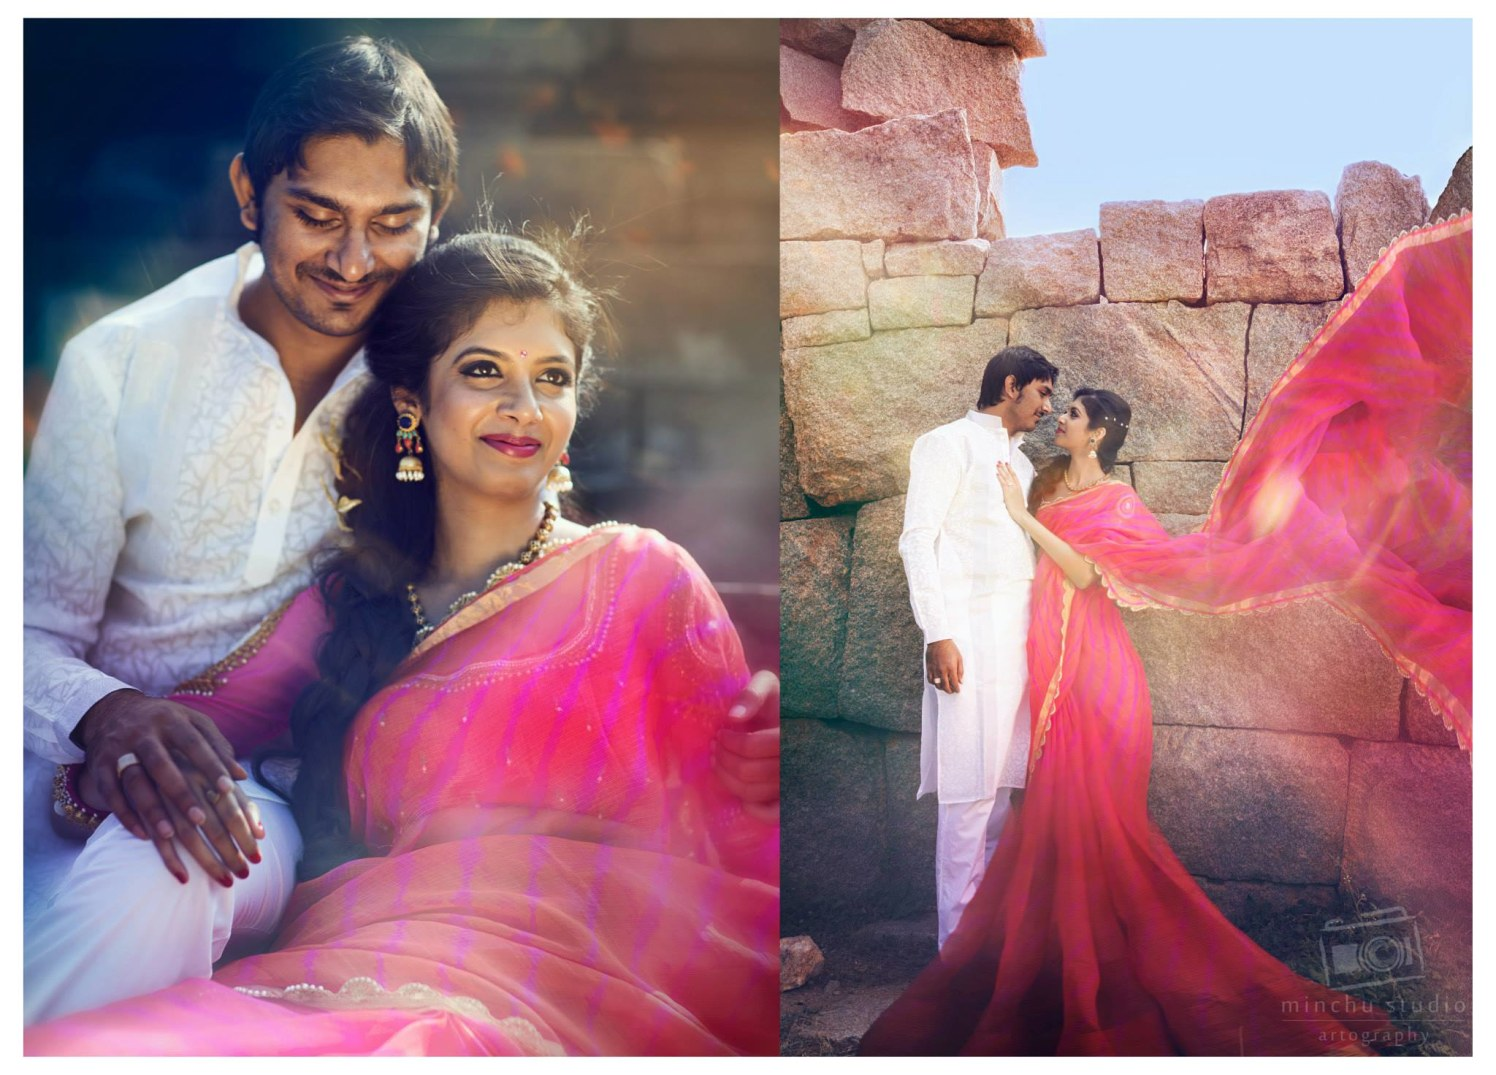 Elegant Pink Saree by Minchu Studio Wedding-photography | Weddings Photos & Ideas